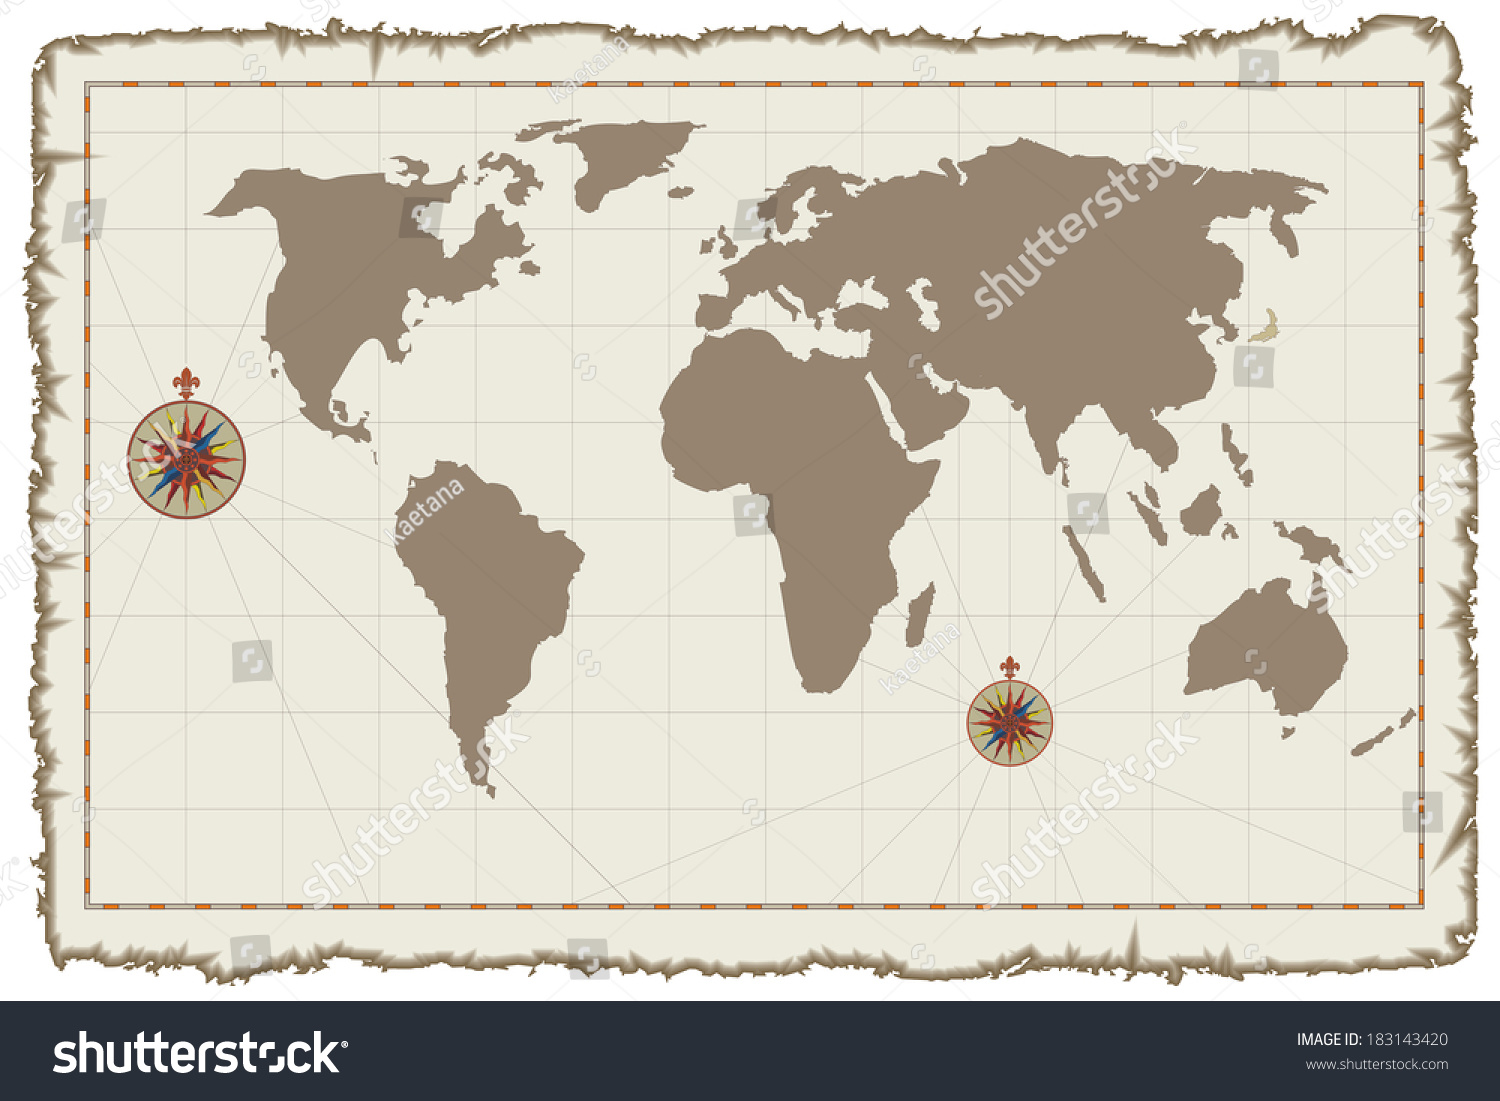 Old medieval style world map on stock illustration 183143420 old medieval style world map on parchment for your travel design gumiabroncs Choice Image